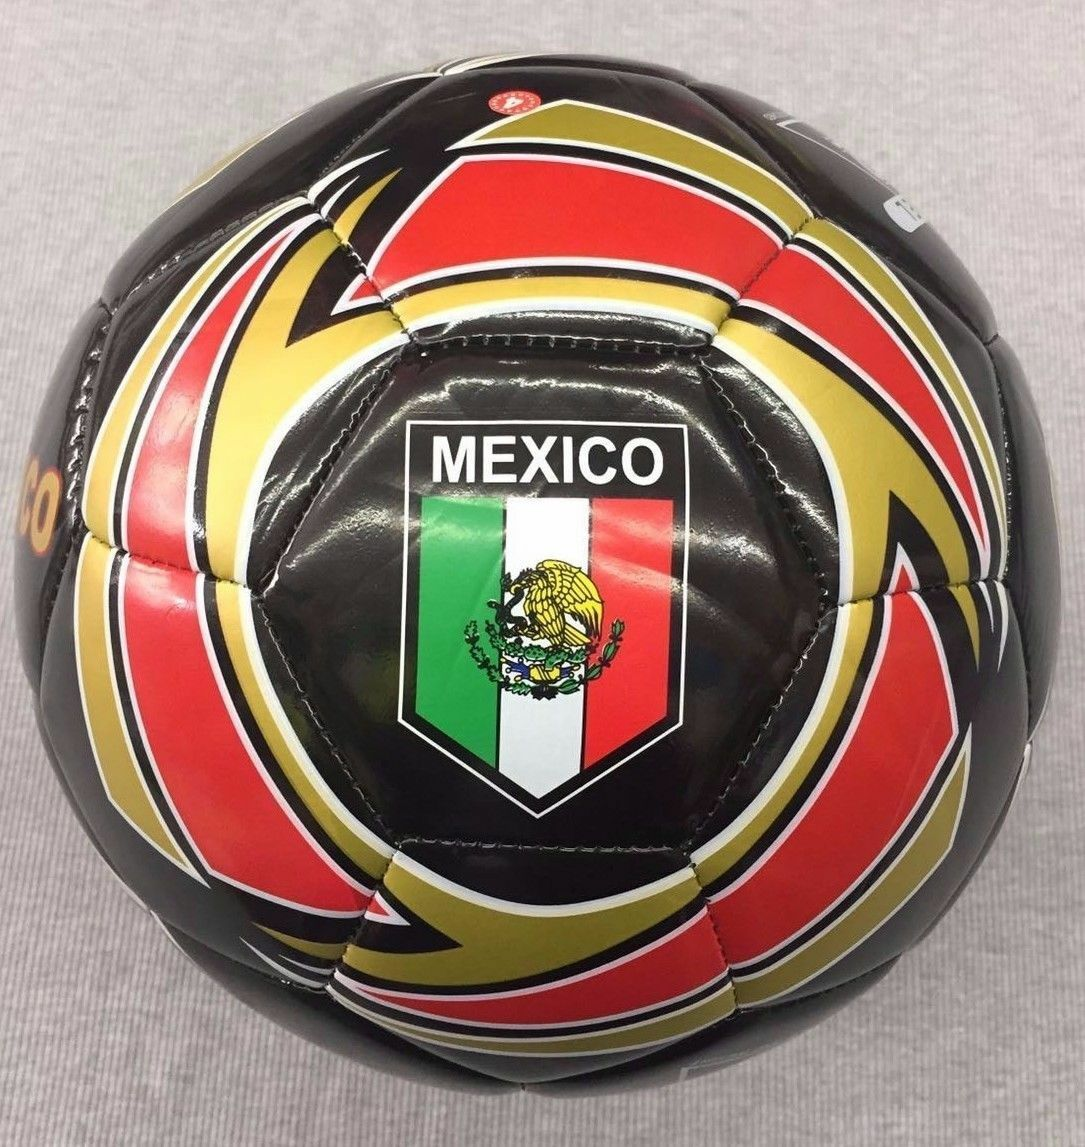 Lot Of 50 Mexico GR Soccer Balls Größe Größe Balls 5 Good For Charity Christmas Special Deal 9a5a0f